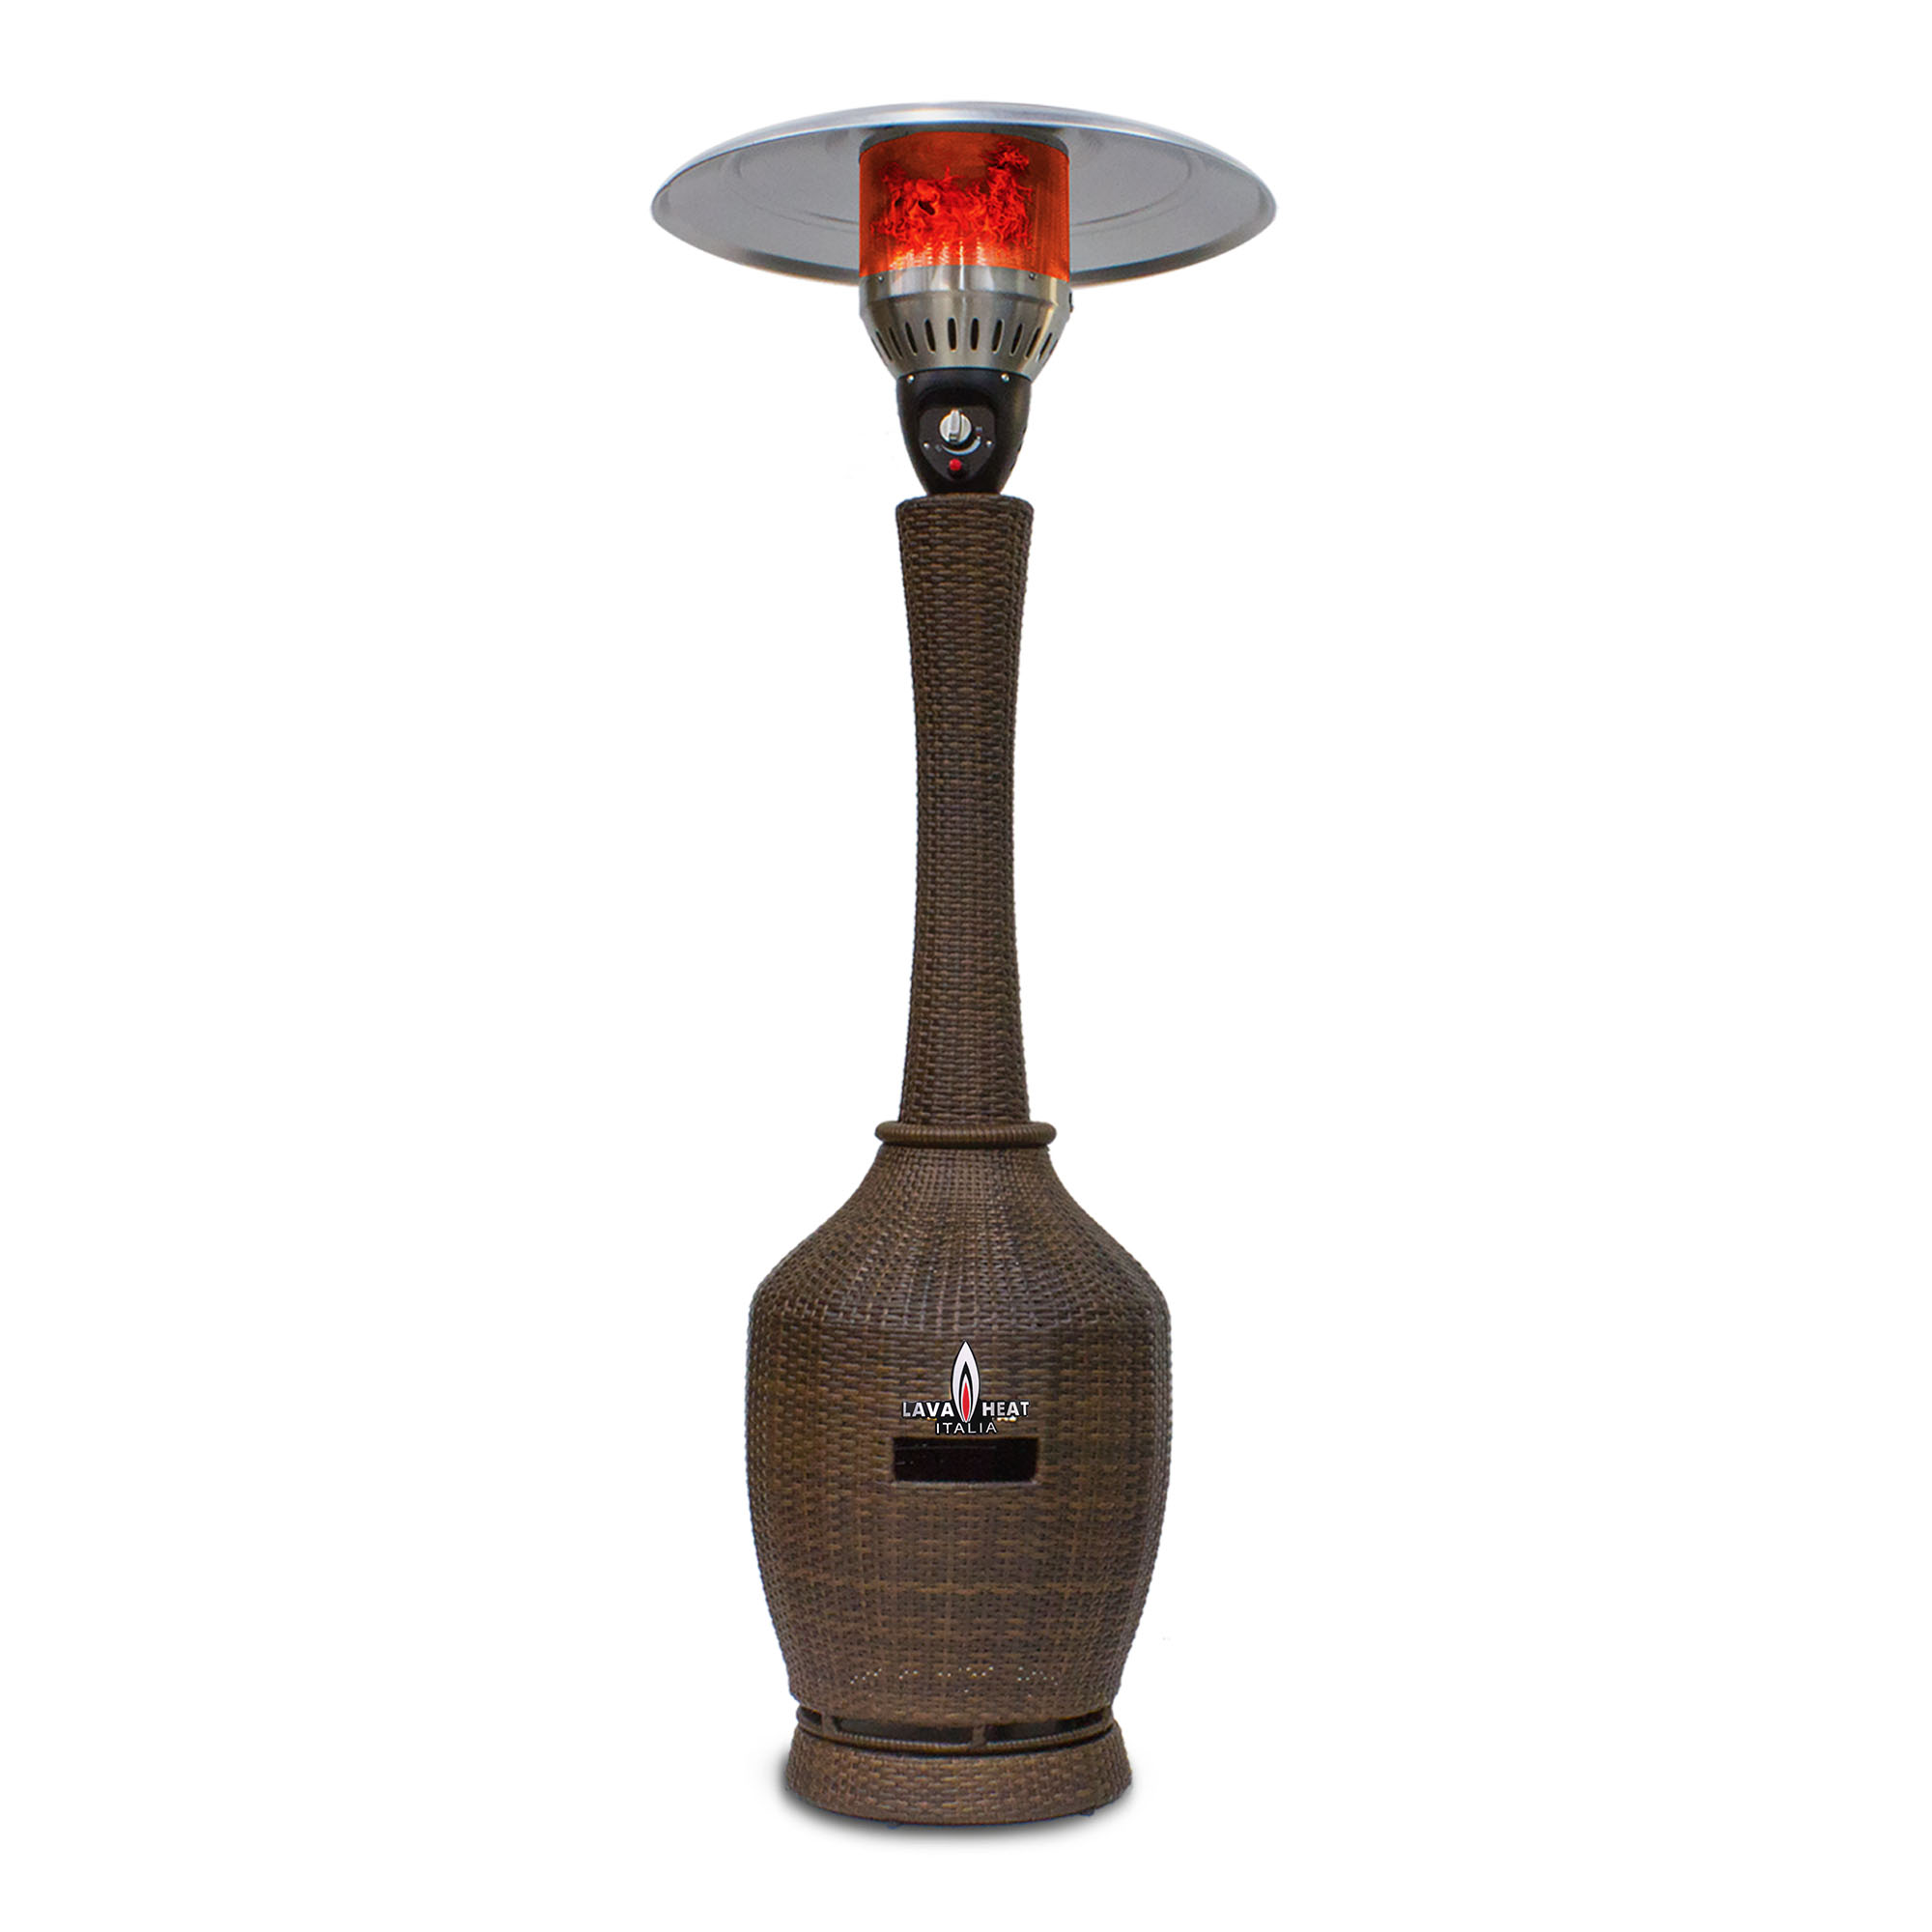 The Lava Heat Italia T-Line 7 Foot Commercial Umbrella Heater, Manual Ignition, Wicker Bronze Finish, Natural Gas